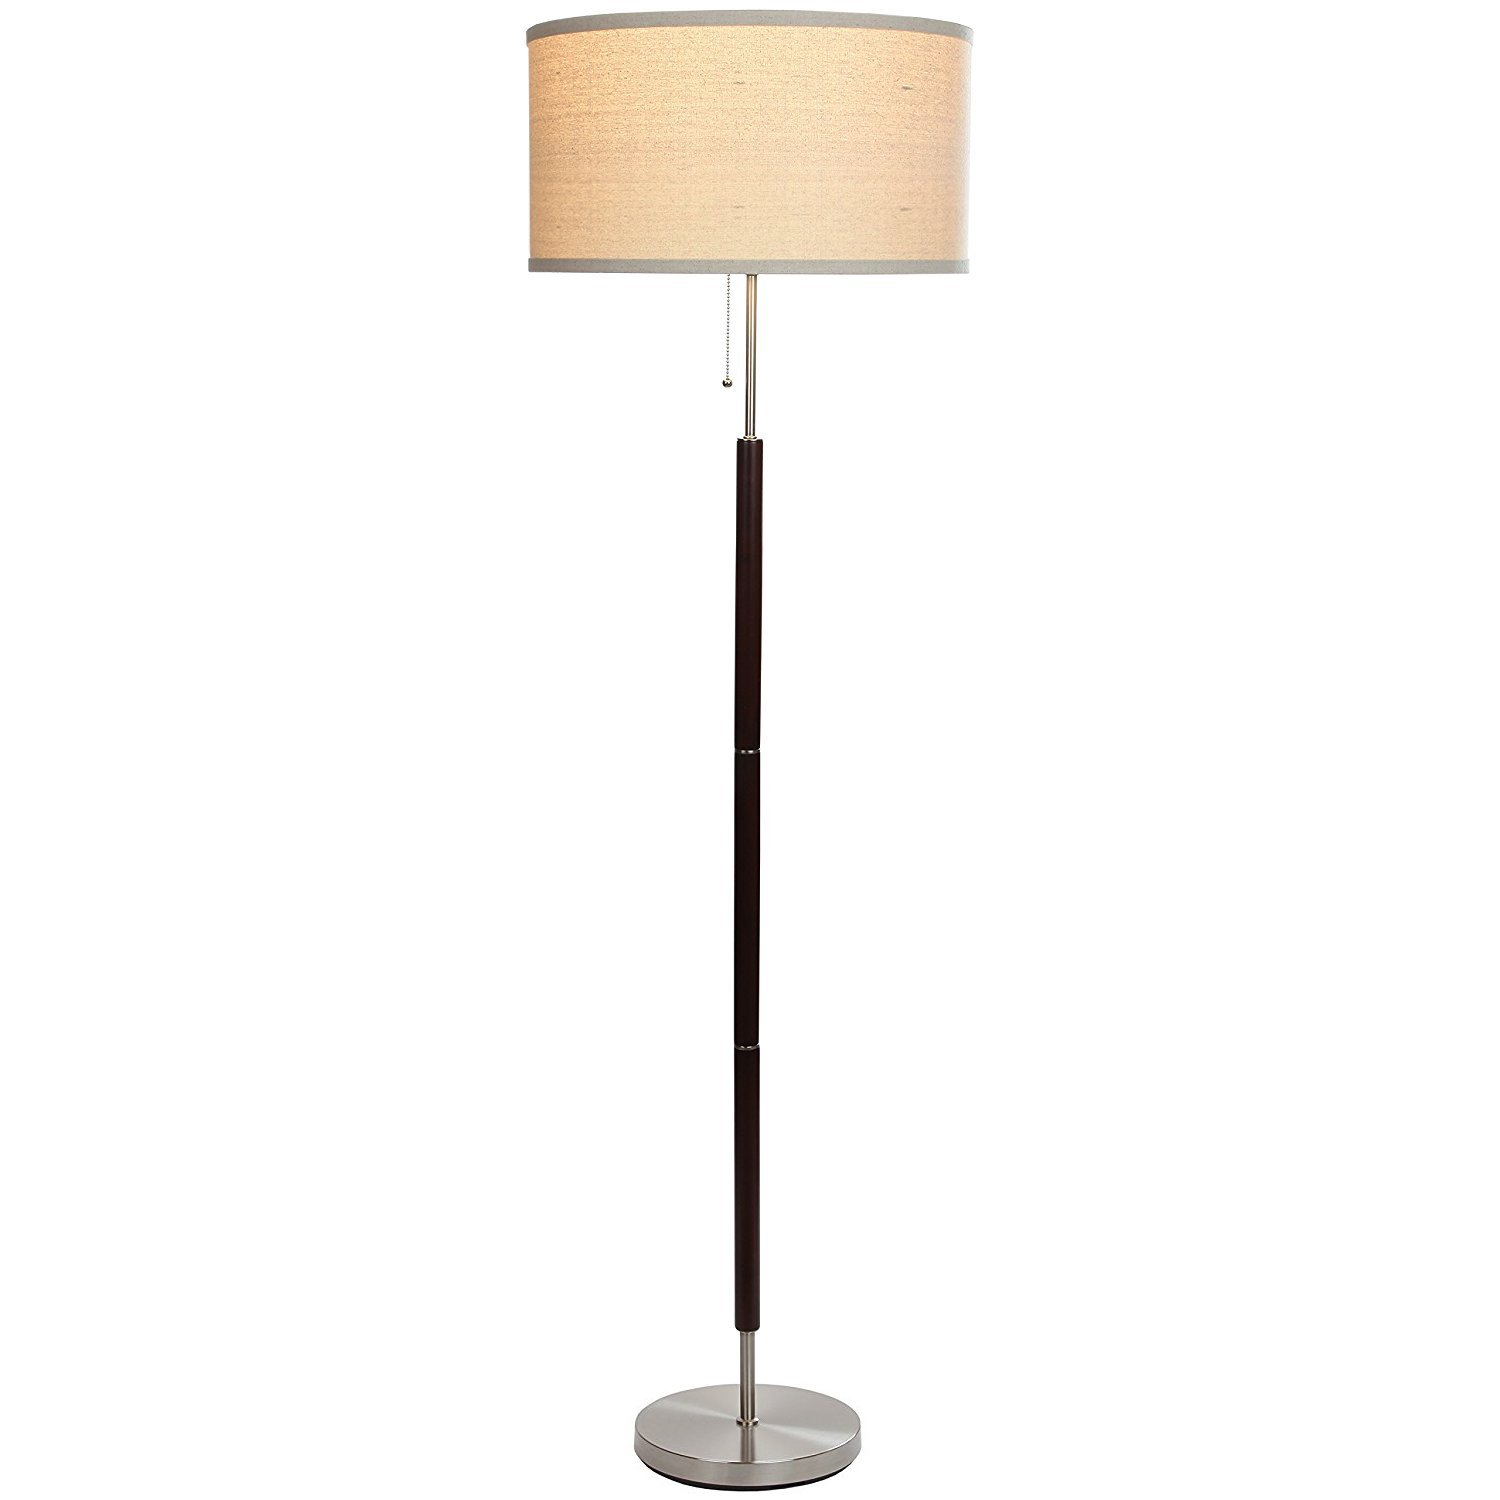 Brightech Carter LED Mid Century Floor Lamp - Modern Living Room Standing Pole Light - Alexa Compatible - Tall Drum Shade Uplight and Downlight with Walnut Wood Finish